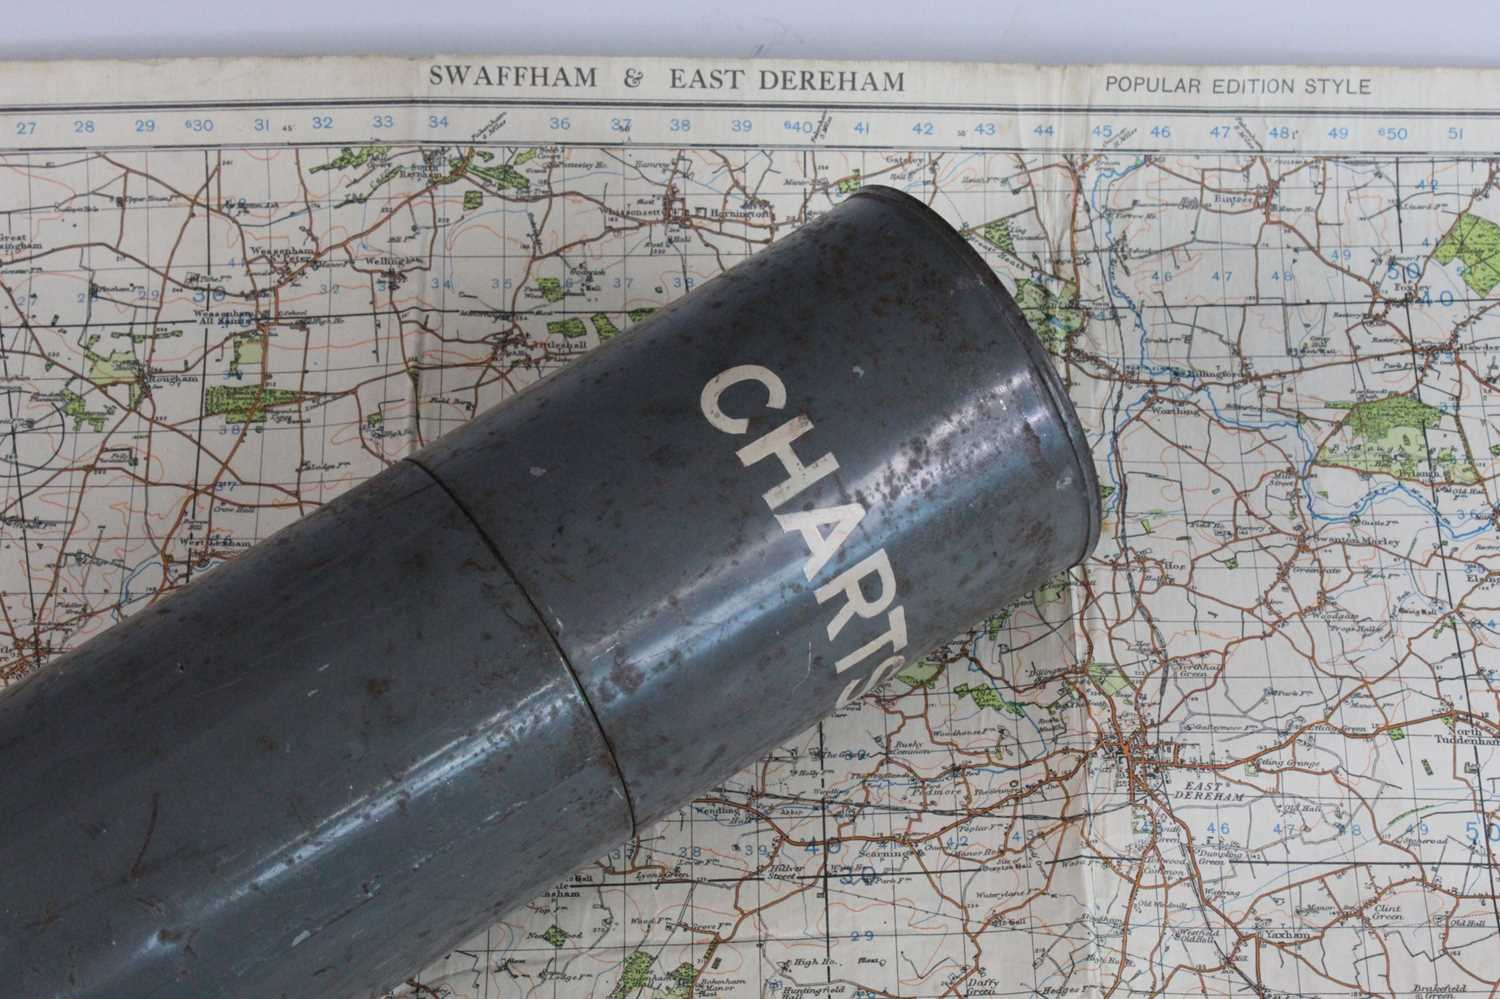 A grey painted tin chart tube containing a 1940 War revision map of Swaffham and East Dereham,